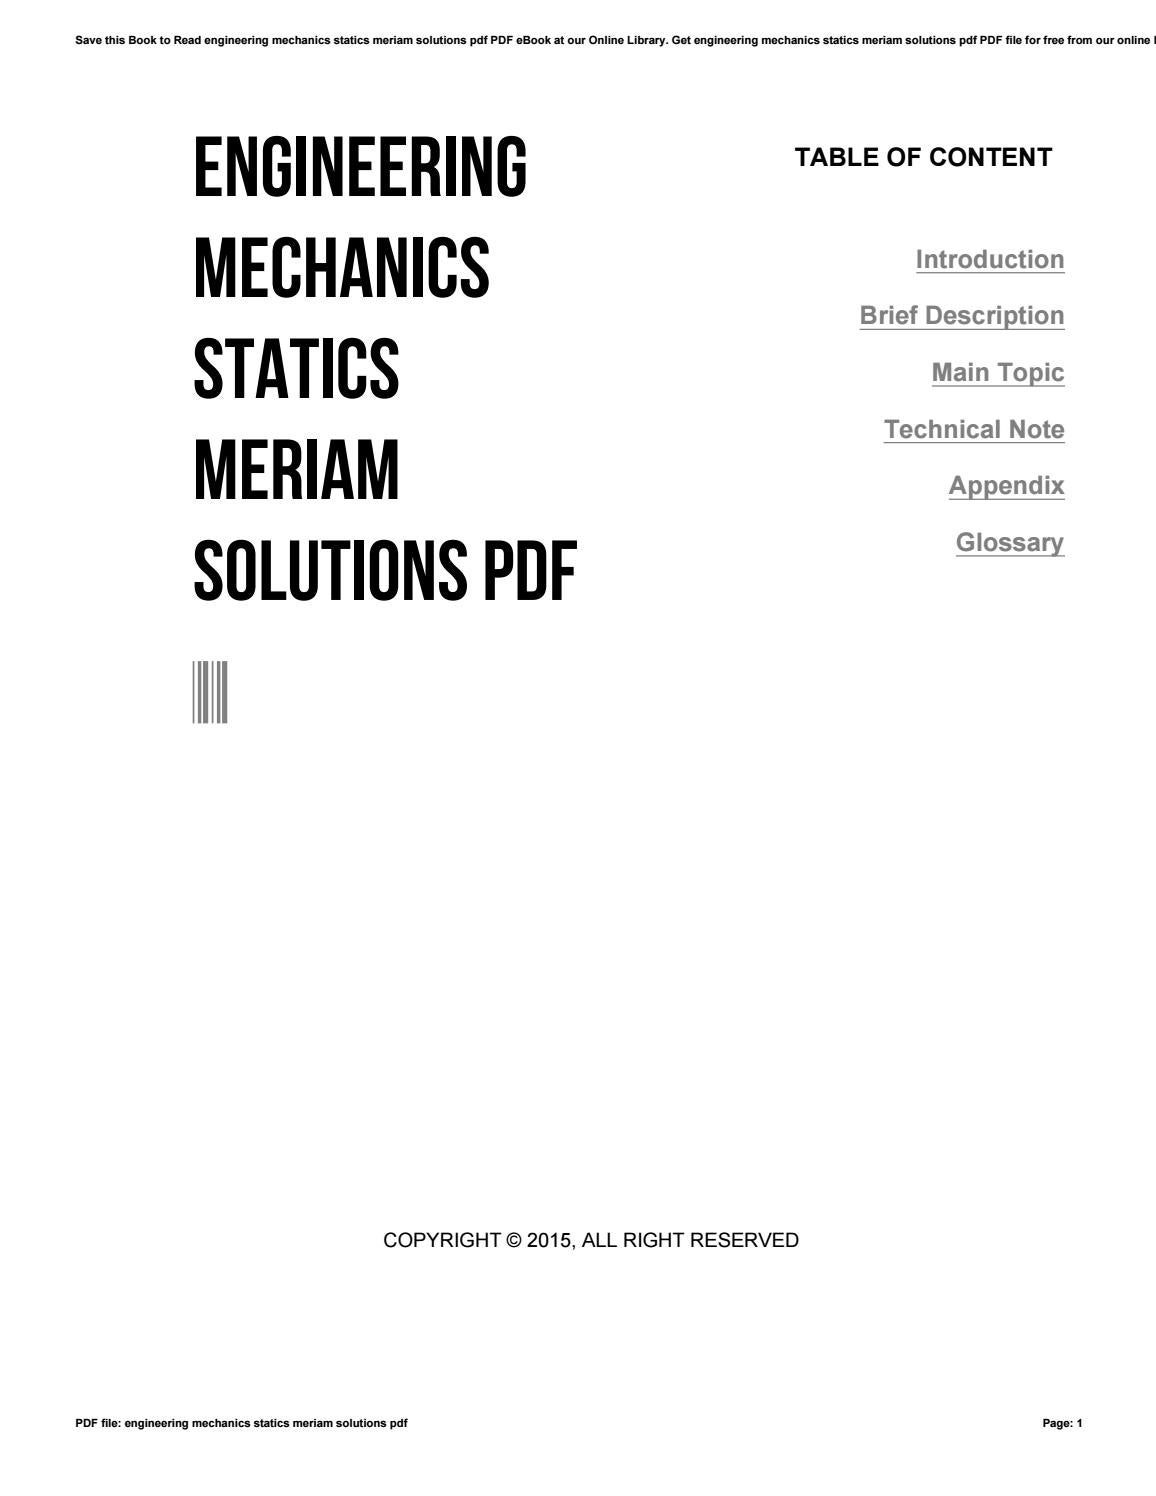 Engineering mechanics statics meriam solutions pdf by